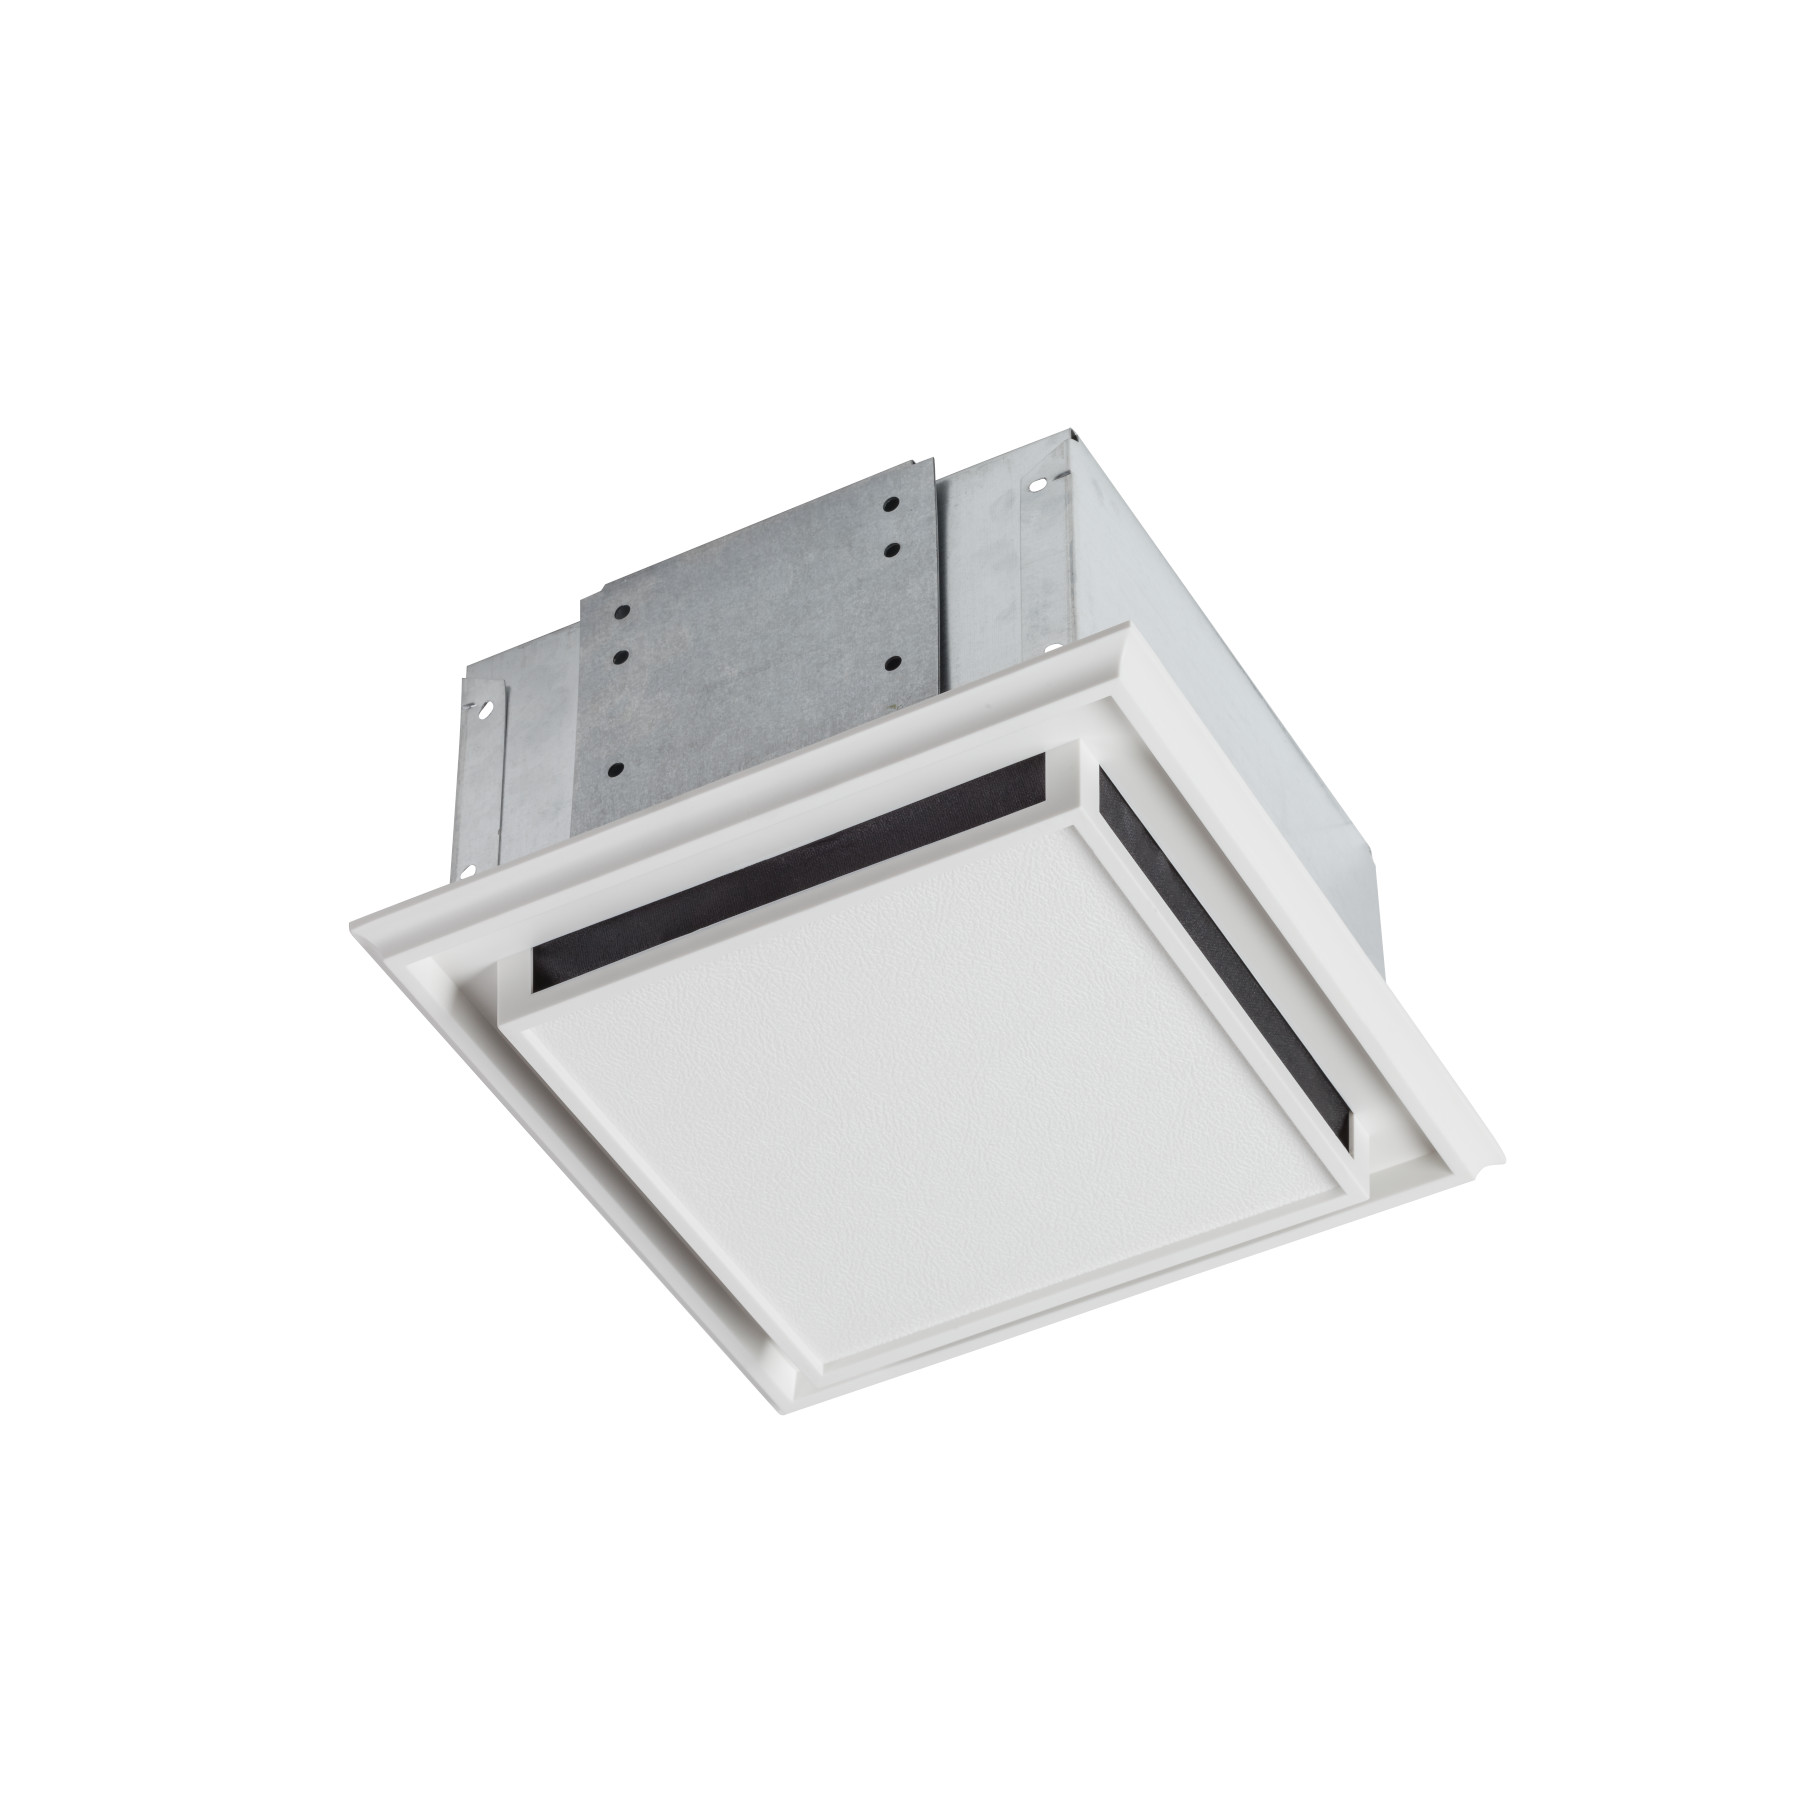 NuTone® Duct-free Ventilation Fan with plastic grille, snap-in mounting and charcoal filter.